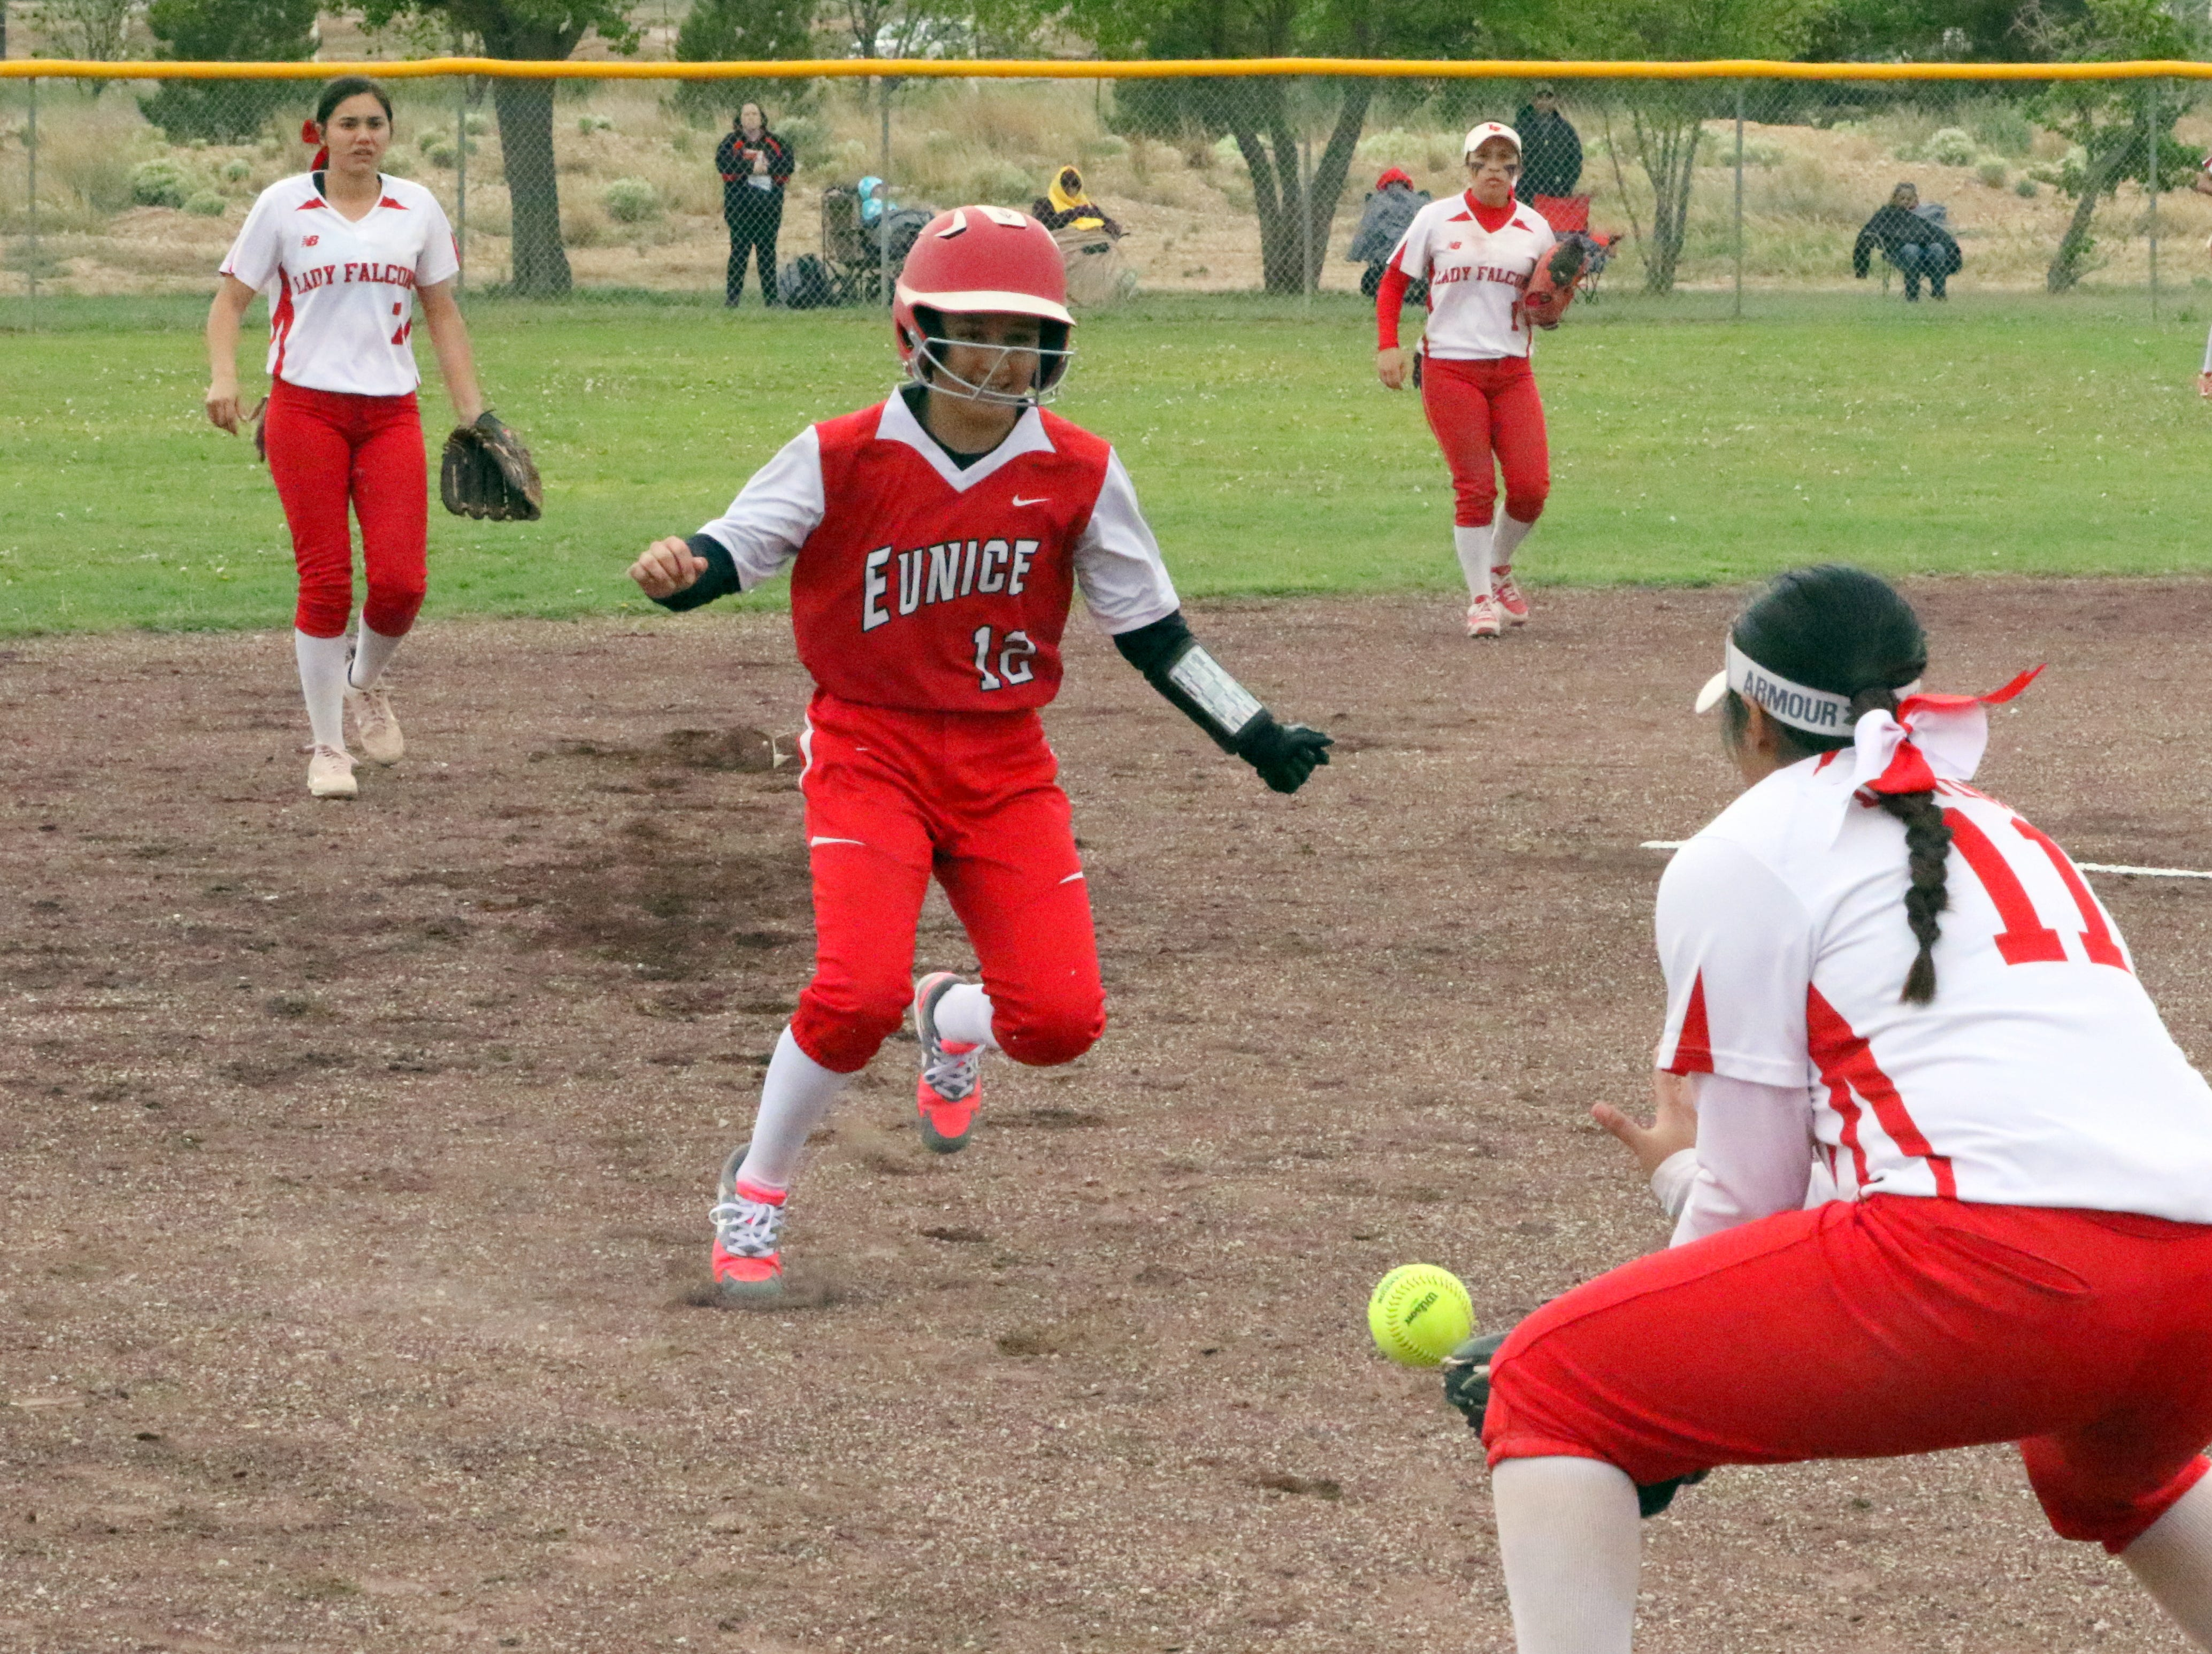 Eunice's Kendra Cabalero is caught in a rundown during Game 1 of Saturday's doubleheader. Eunice won Game 1, 13-12 and Loving won Game 2, 16-6.